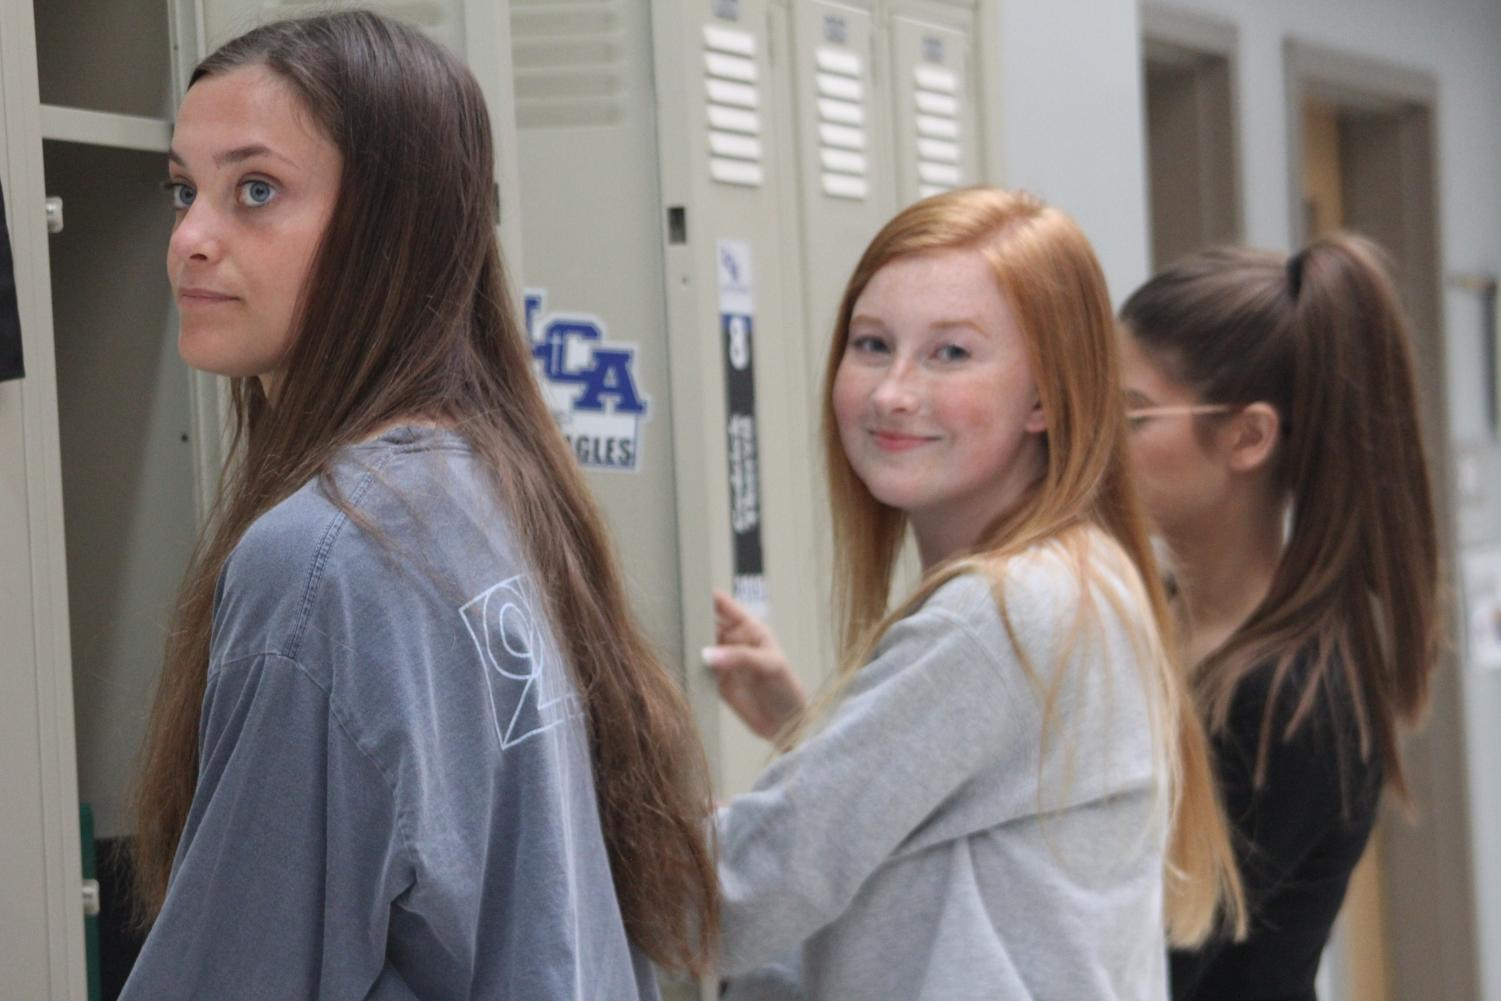 Seniors Cate Crosbie, Gretchen Casper, and Haidyn Chudy mess with the freshmen lockers as part of senior prank.